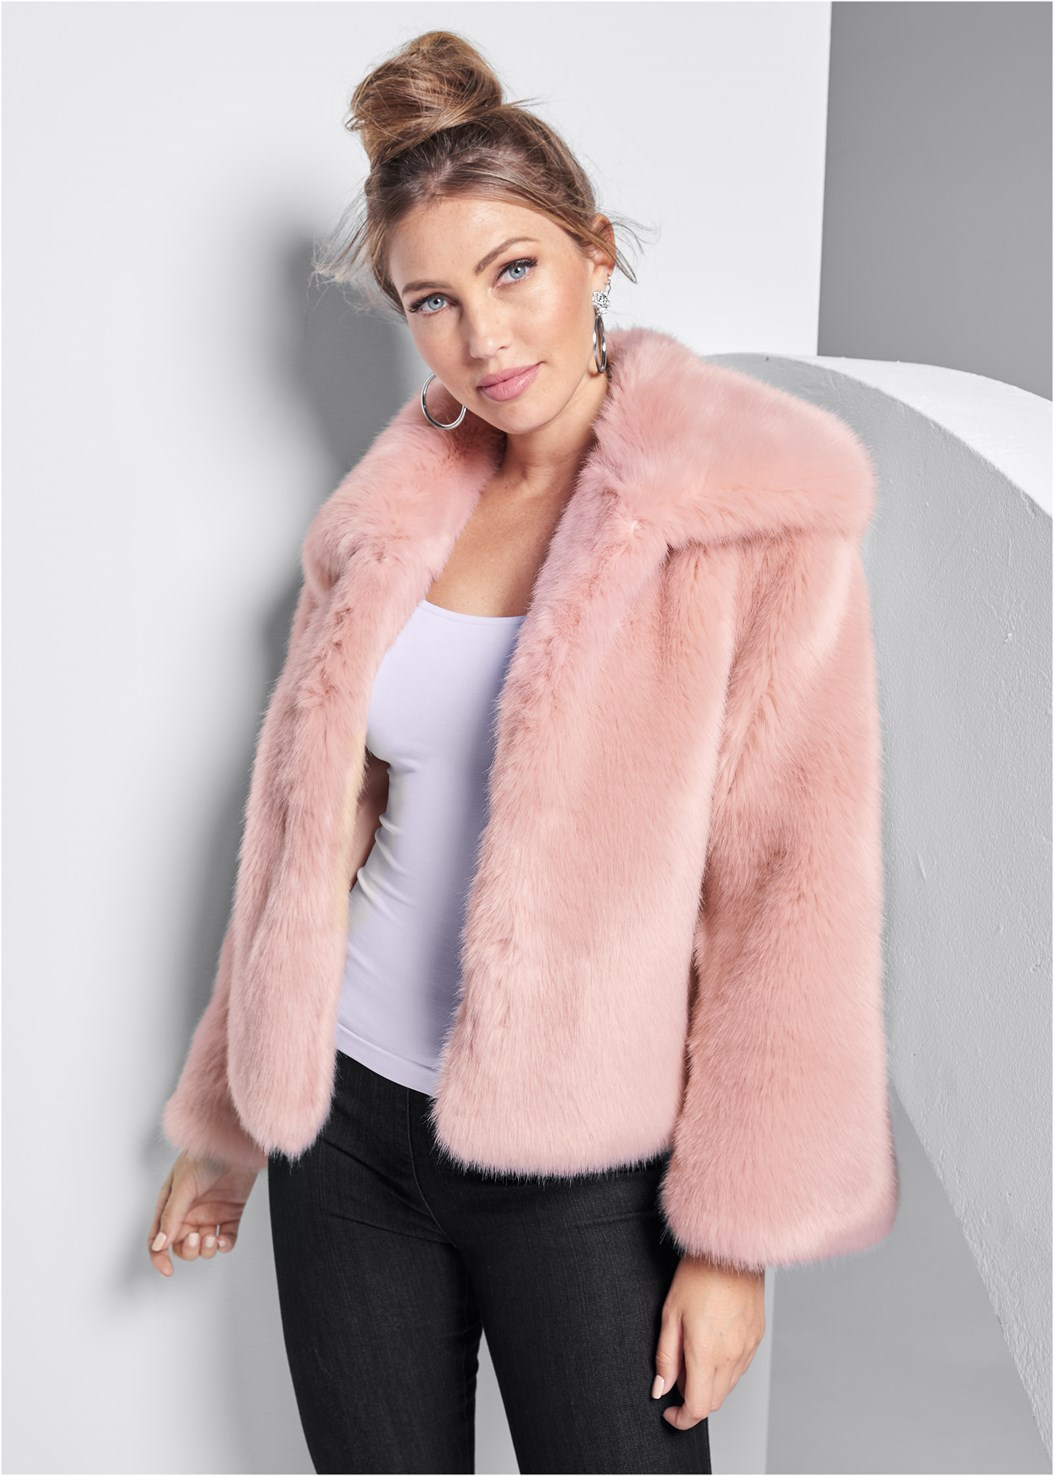 Faux Fur Coat,Basic Cami Two Pack,Off The Shoulder Bodysuit,Mid Rise Slimming Stretch Jeggings,Strapless Bra With Geo Lace,Tiger Detail Earrings